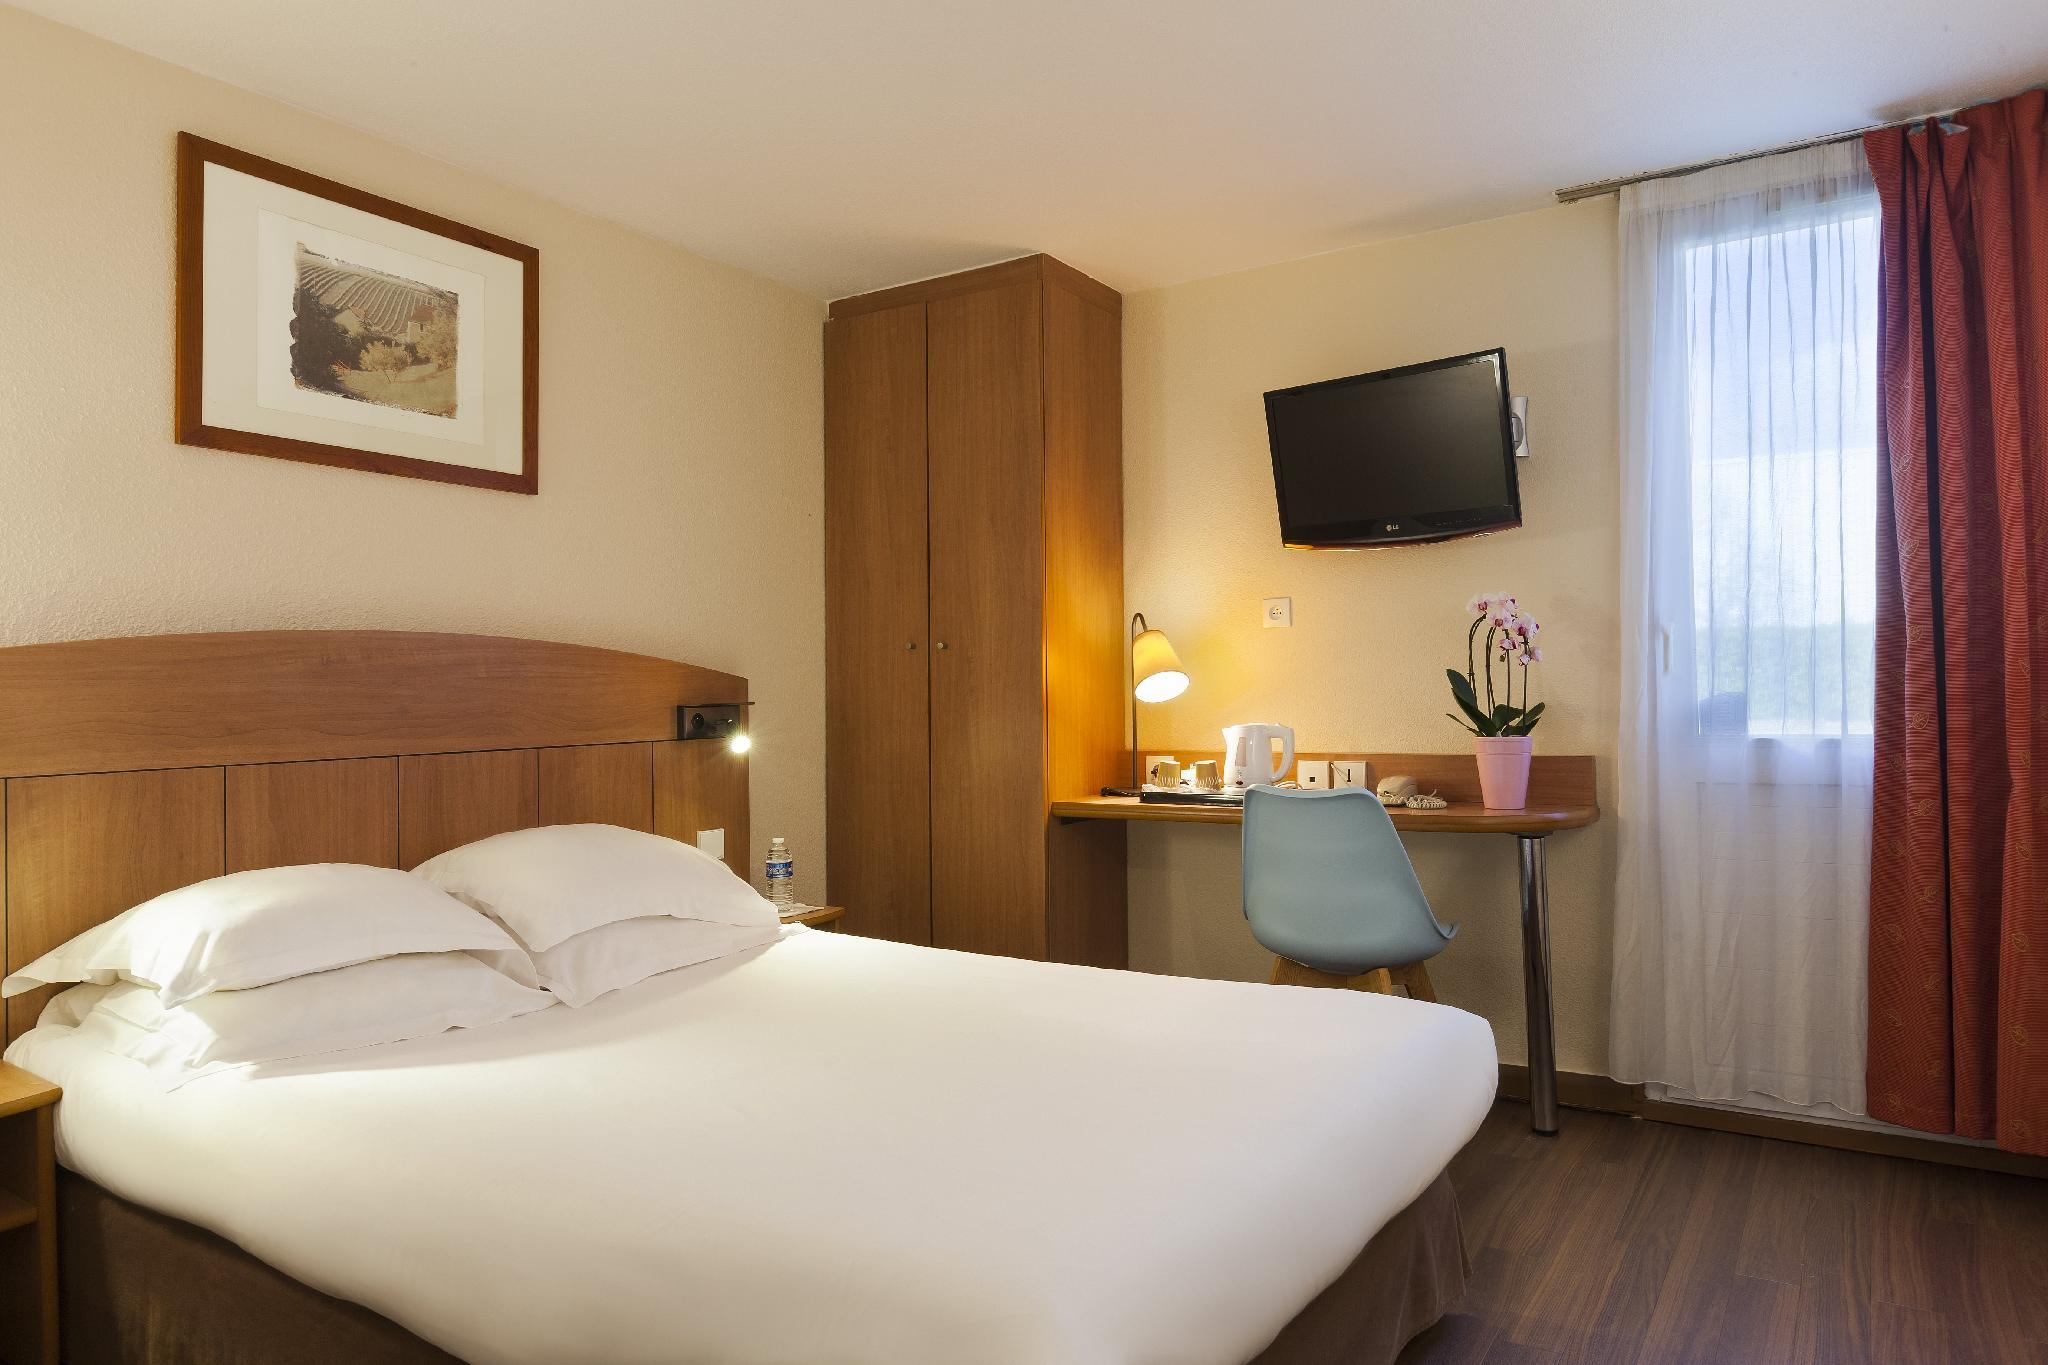 La Chambre D'amiens Tripadvisor Comfort Hotel Amiens Nord In France Room Deals Photos